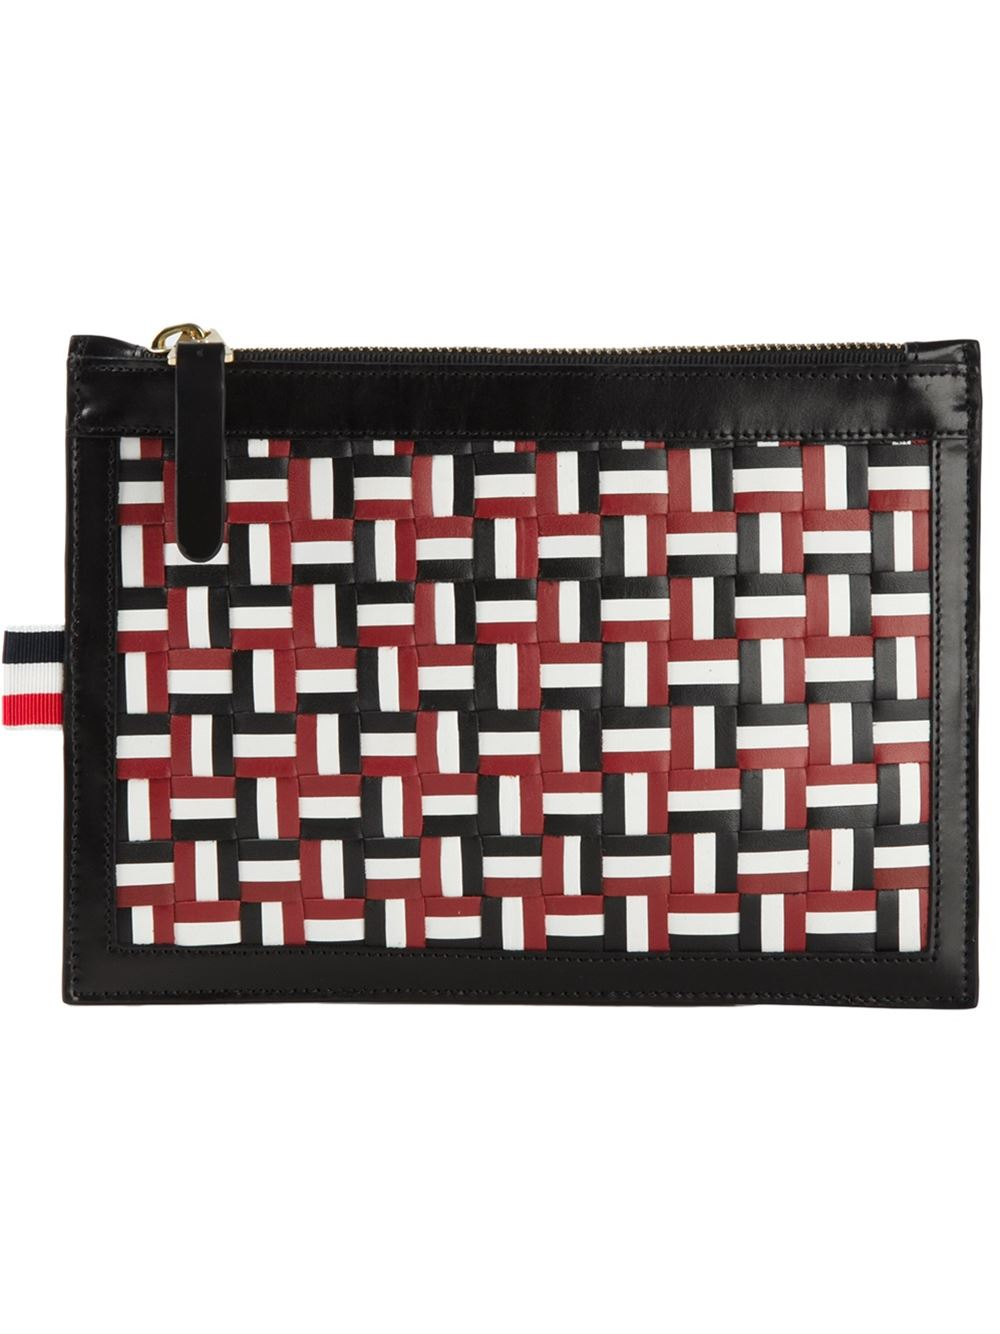 b73233c3d3 Lyst - Thom Browne Woven Zipped Clutch in Black for Men